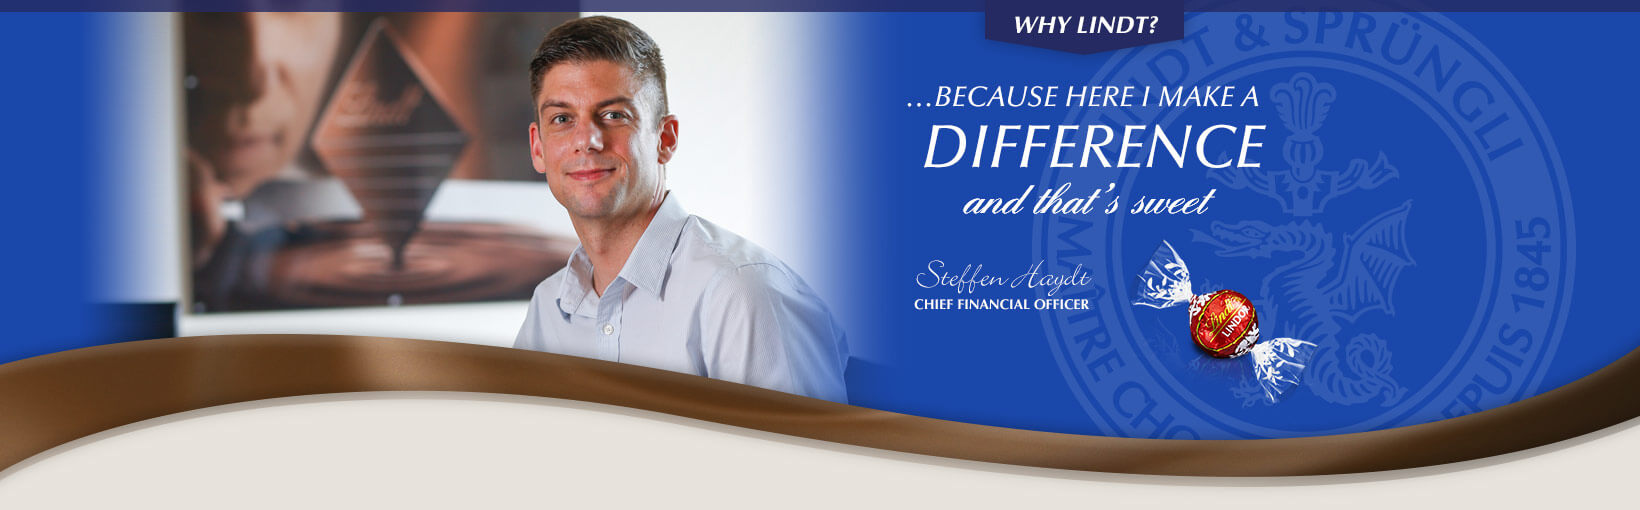 Why Lindt? …Because here I make a difference and that's sweet. Steffen Haydt, Chief Financial Officer